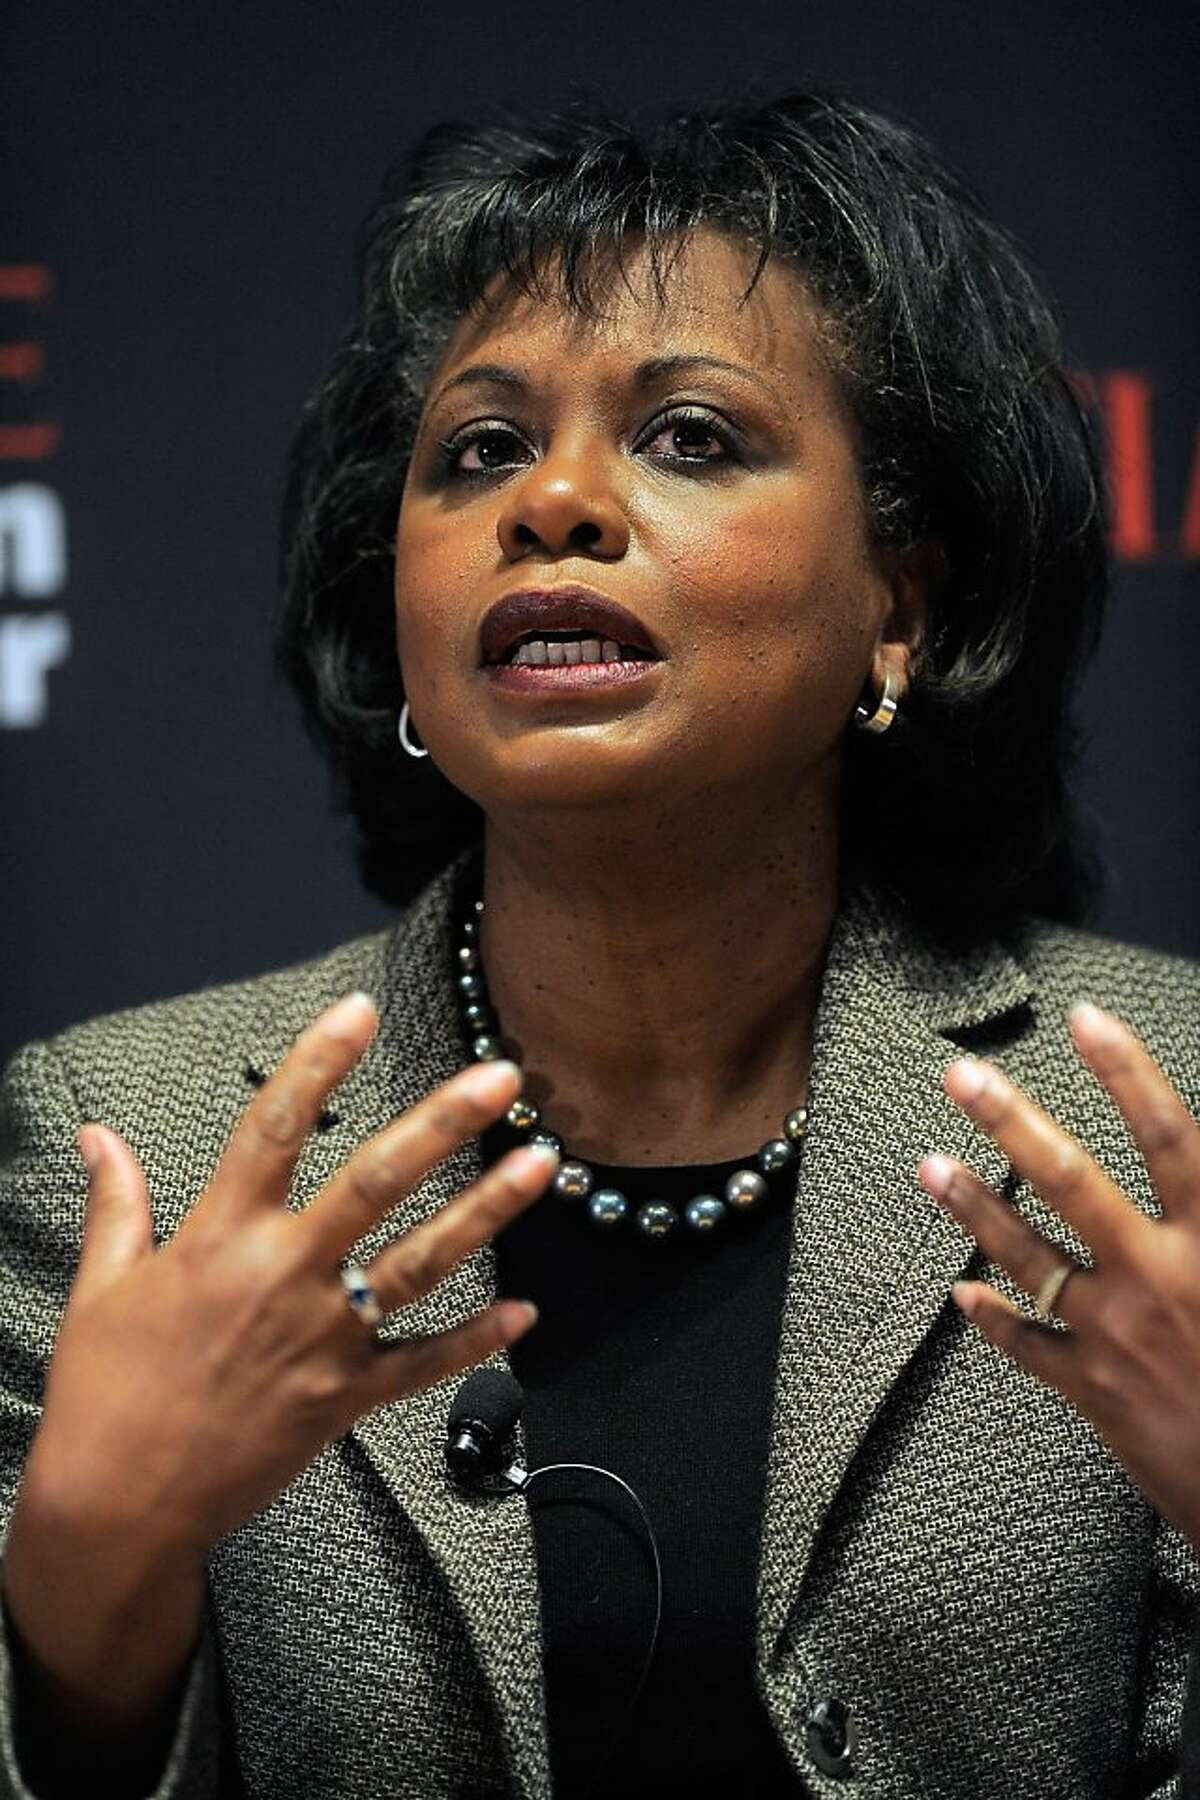 NEW YORK, NY - NOVEMBER 08: Professor Anita Hill speaks during the TIME Person of the Year panal discussion duing the TIME Person of the Year Lunch at Time Life Building on November 8, 2011 in New York City. NEW YORK, NY - NOVEMBER 08: Professor Anita Hill speaks during the TIME Person of the Year panal discussion duing the TIME Person of the Year Lunch at Time Life Building on November 8, 2011 in New York City. (Photo by Jemal Countess/Getty Images for Time)